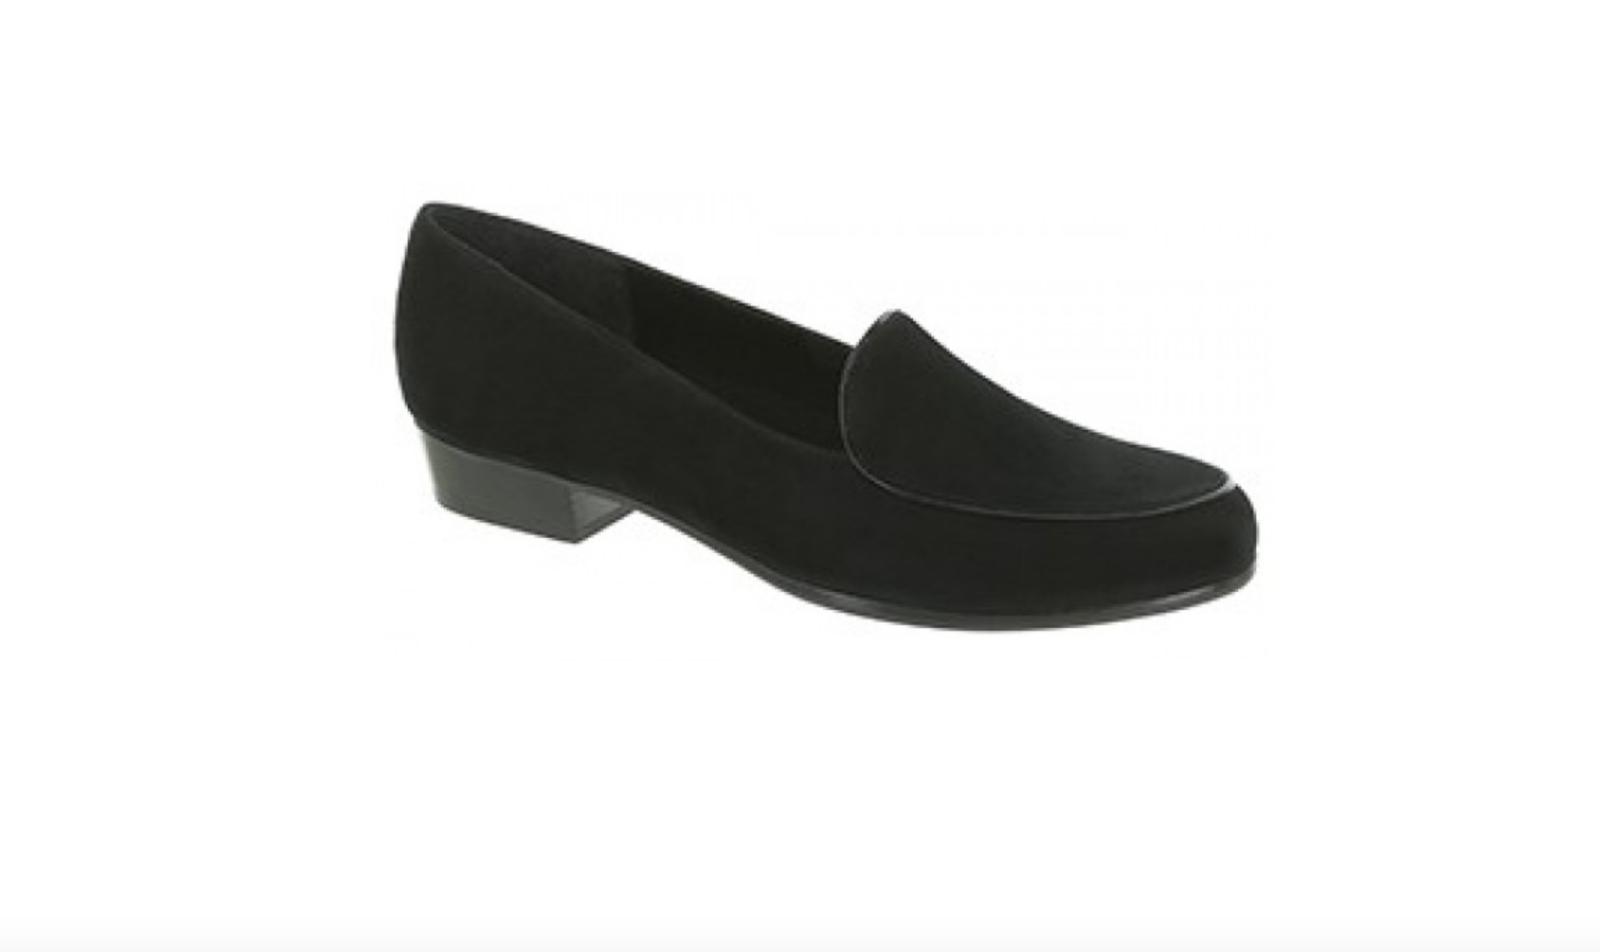 Women Munro American Mallory Black Suede Suede Suede Loafer Size 8 ½  Water Resistant NEW . e649d4